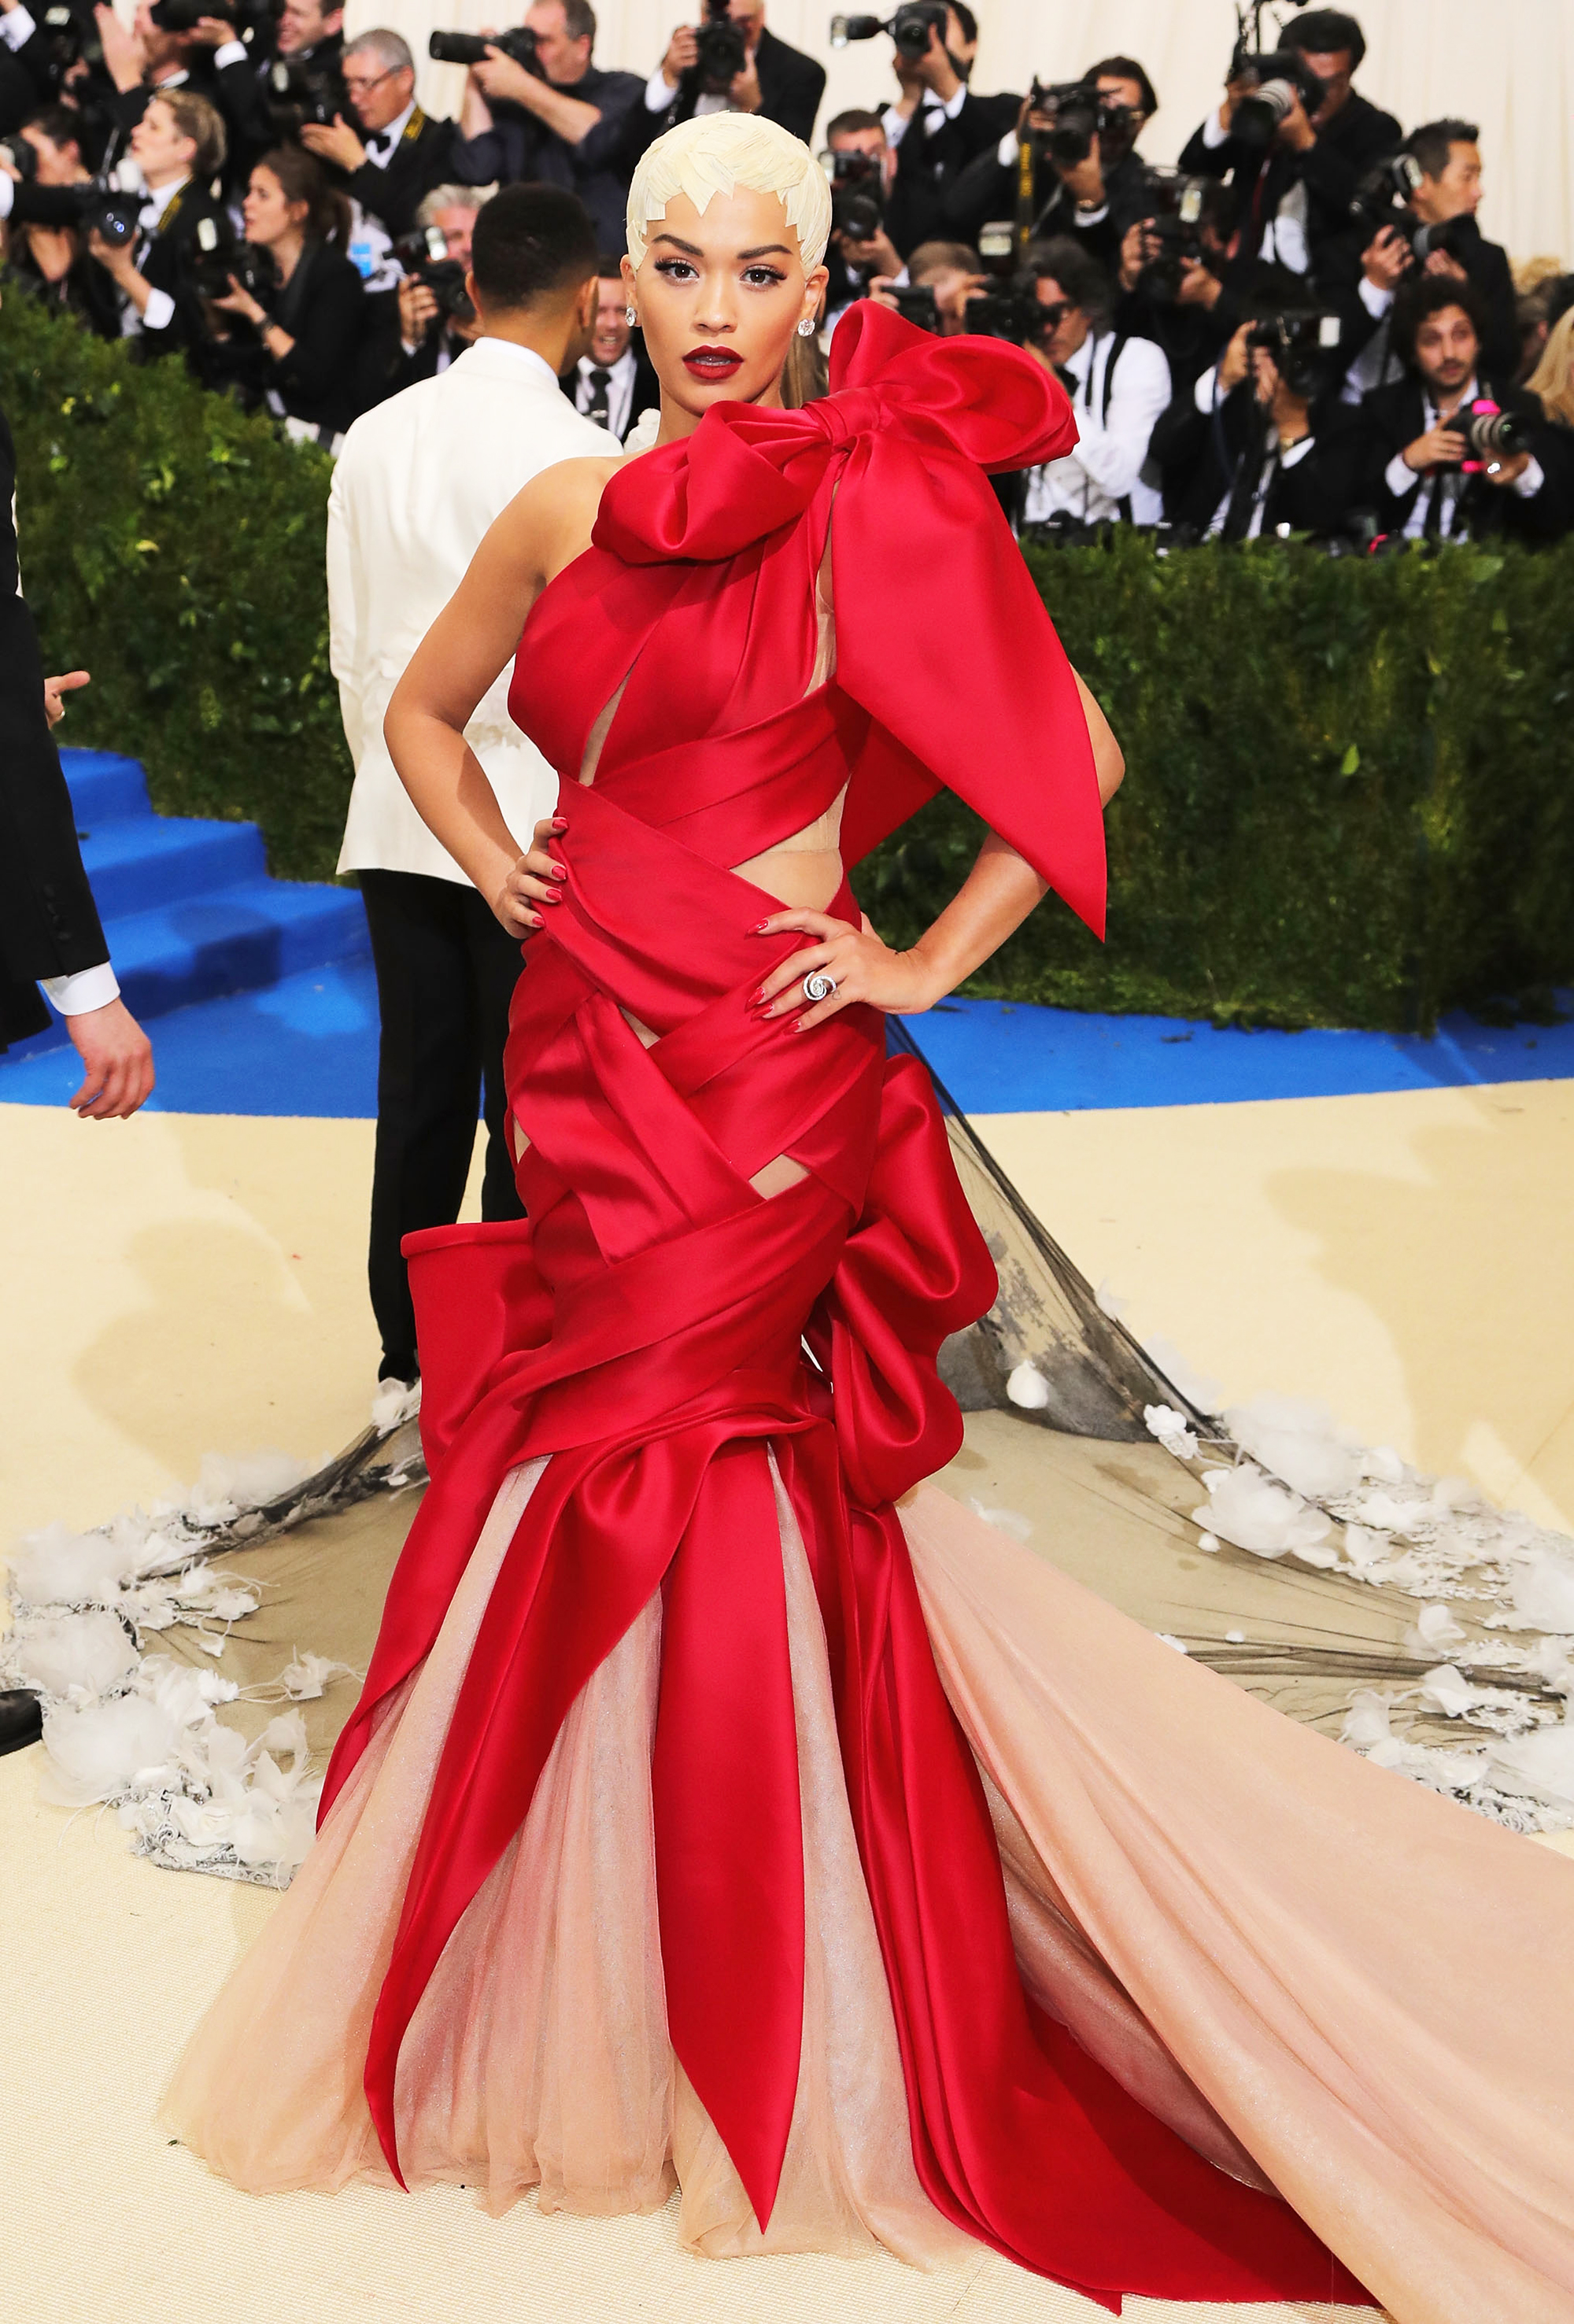 Rita Ora attends The Metropolitan Museum of Art's Costume Institute benefit gala celebrating the opening of the Rei Kawakubo/Comme des Garçons: Art of the In-Between exhibition in New York City, on May 1, 2017.